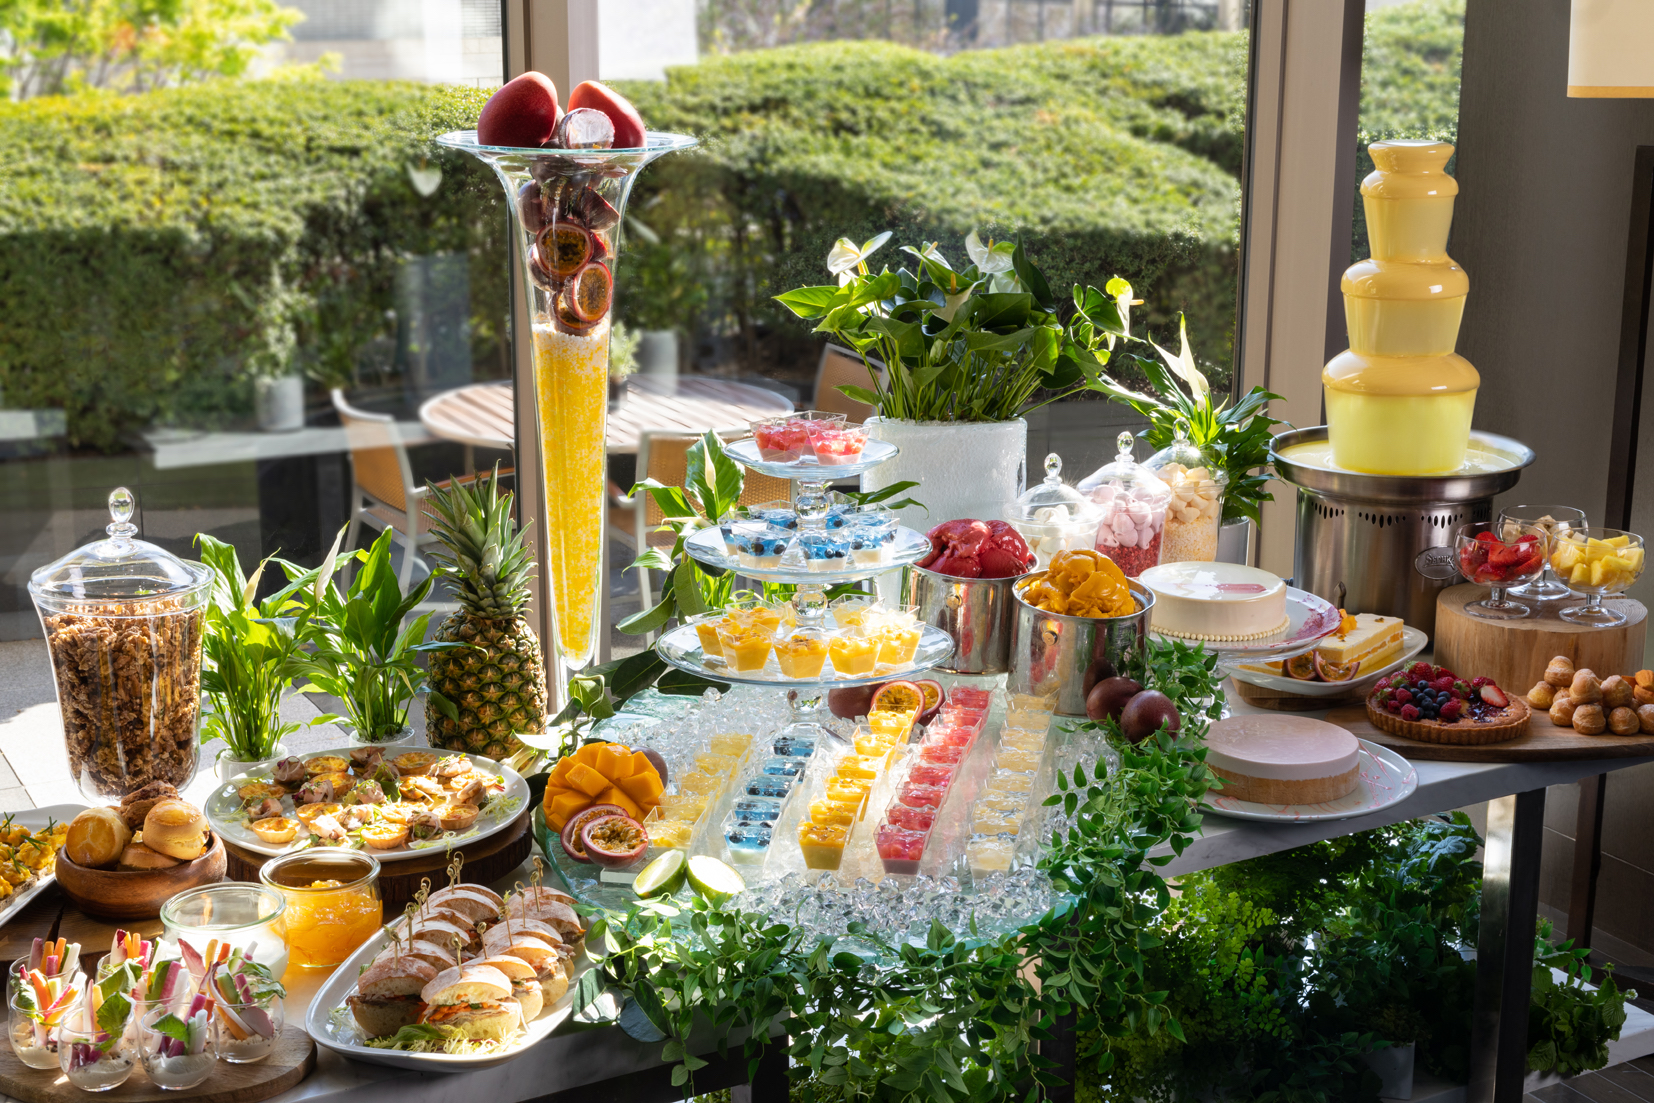 Grand Hyatt Summer Desserts Buffet